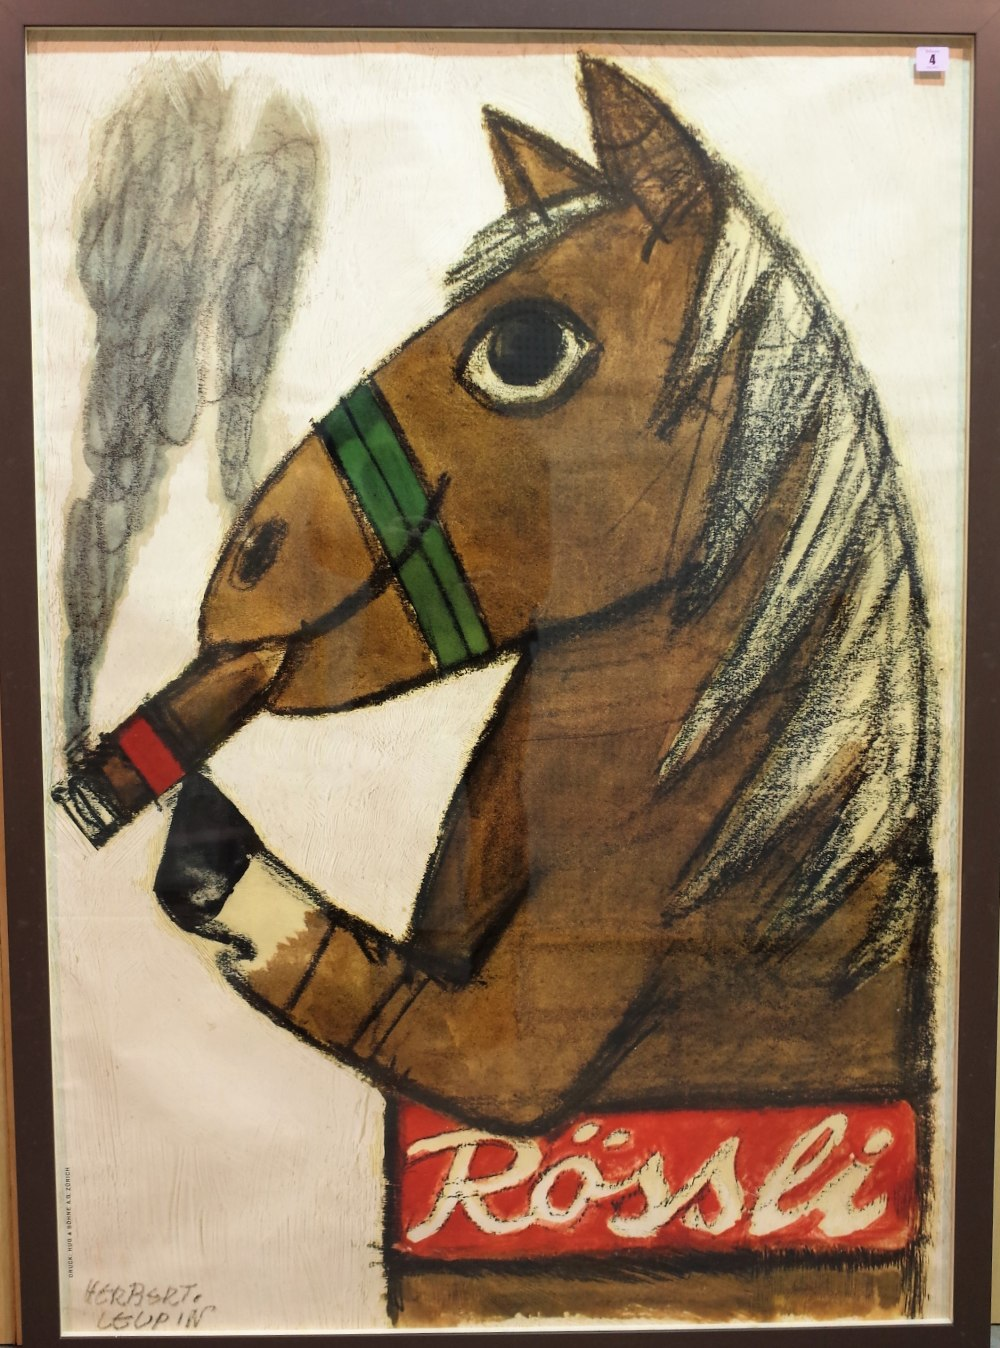 Herbert Leupin 'Rossei', produced by Druch and Sohn A.G. Zurich, depicting a horse smoking a... Image